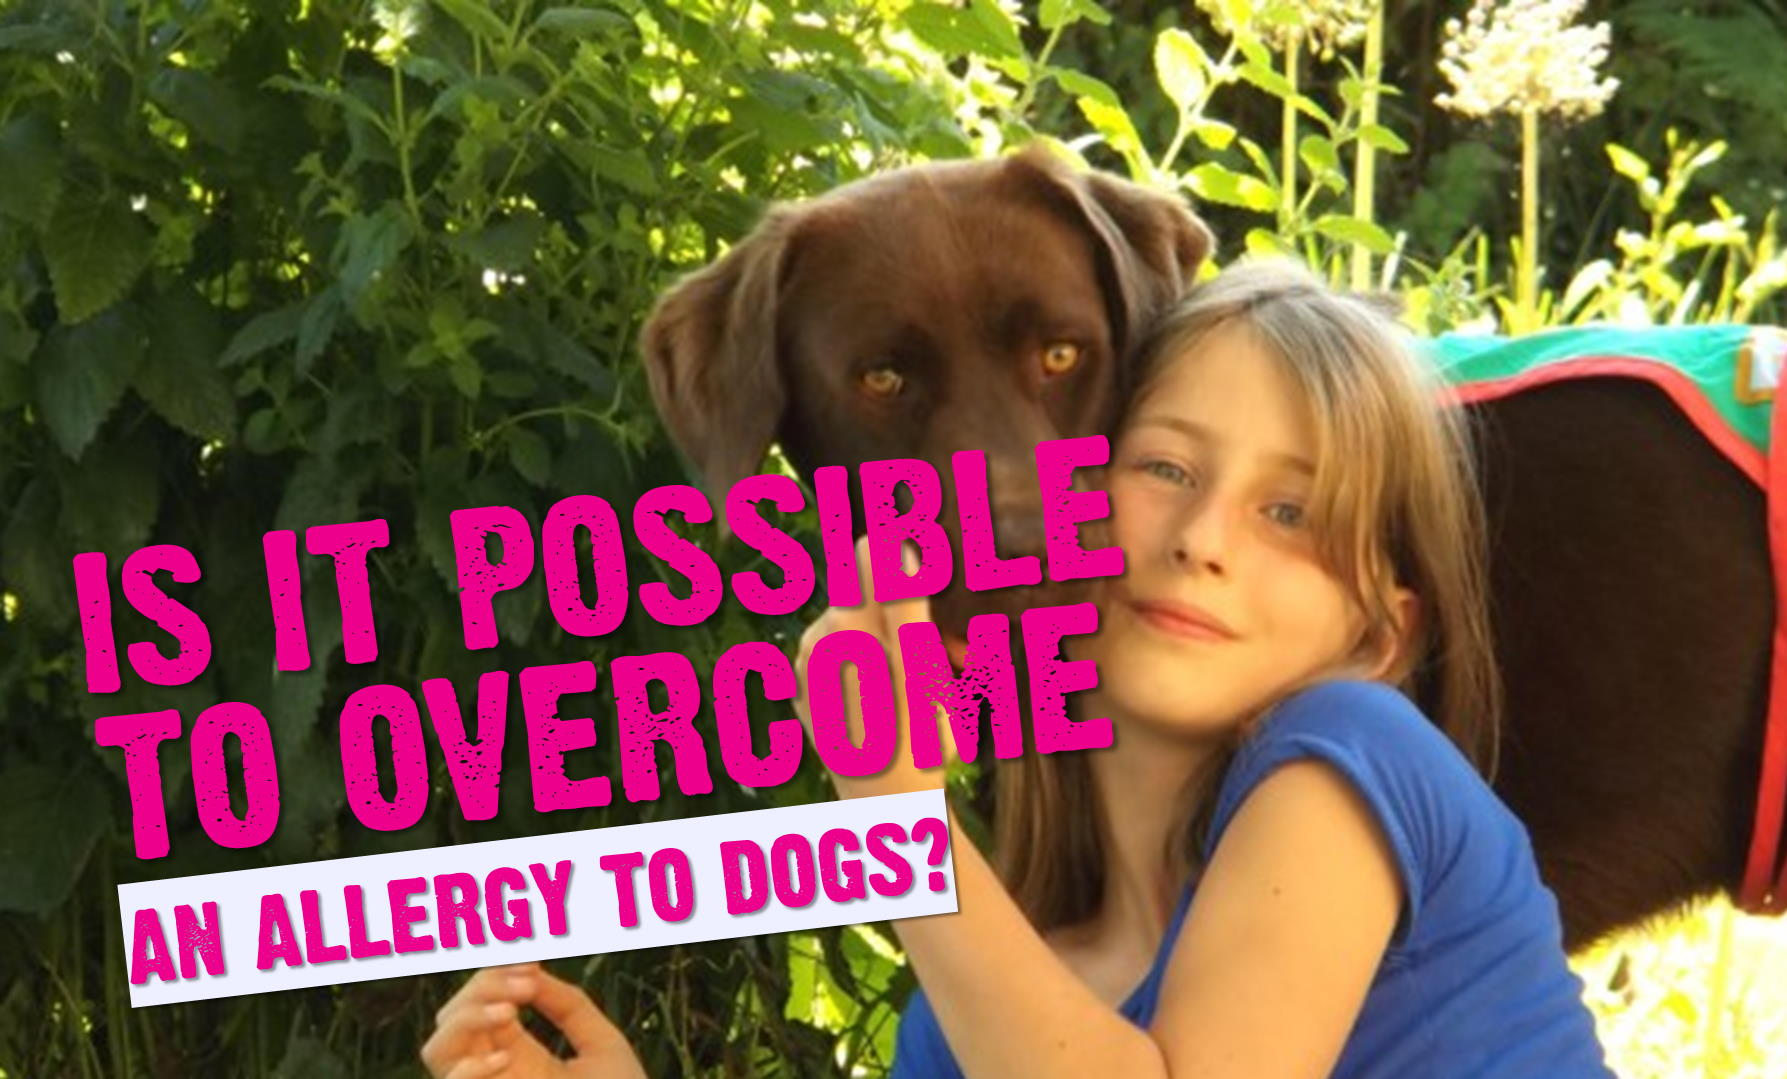 Is It Possible To Overcome An Allergy To Dogs? (Yes. Read This Story)